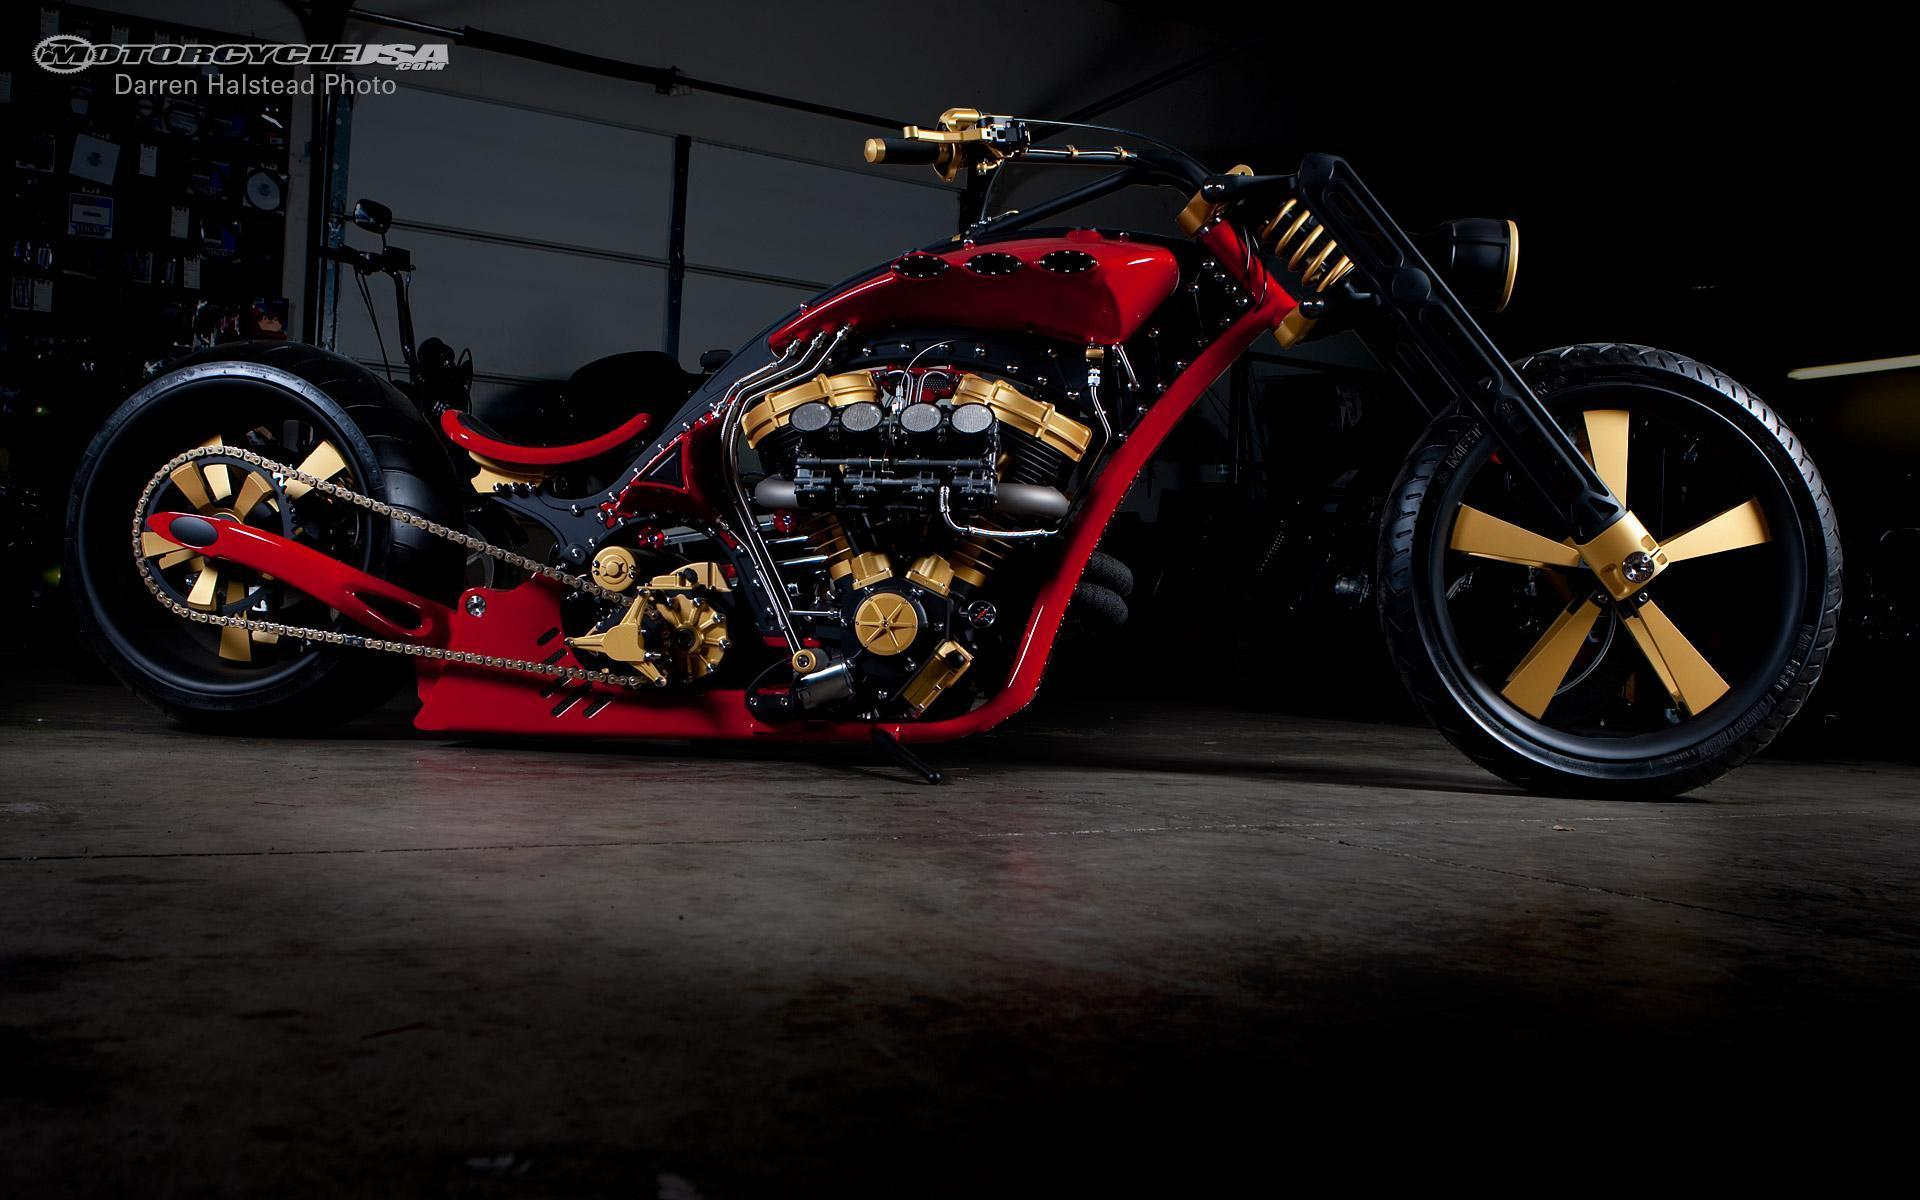 harley-davidson-bikes-wallpapers-hd-2012-2 - Cubewallpaper.com ...